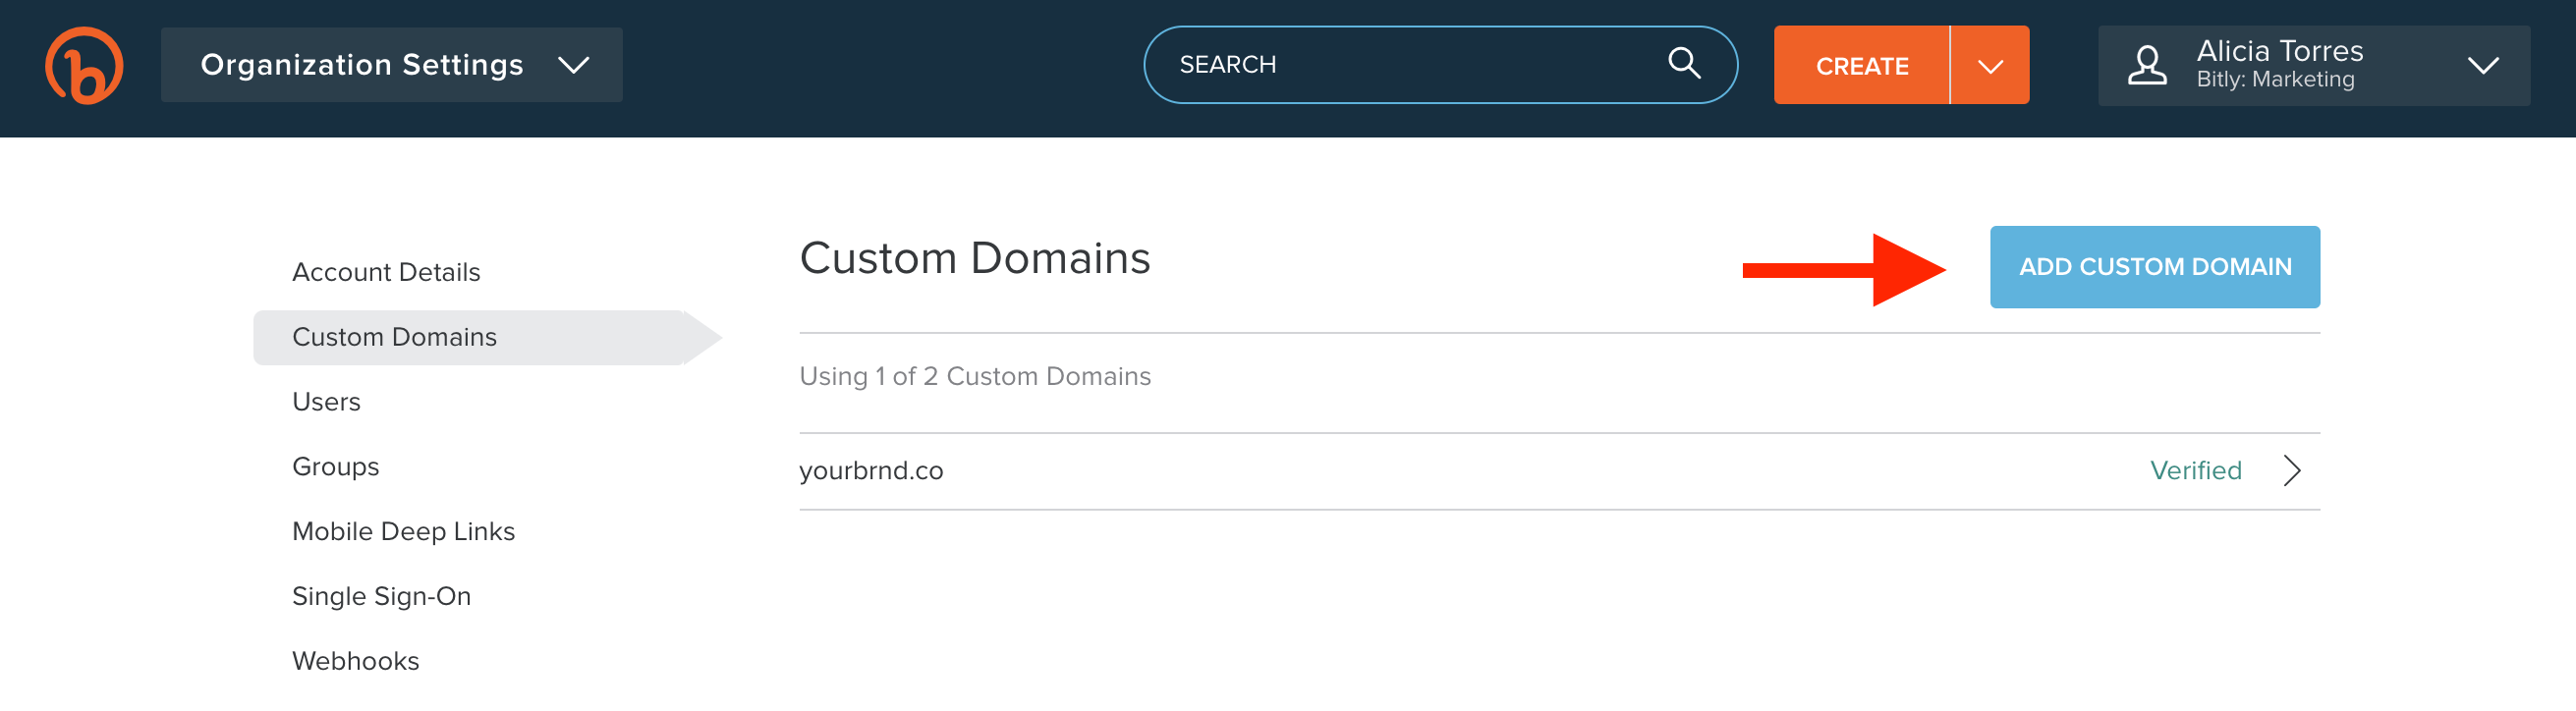 How to Add a Custom Domain in Bitly to create branded short links for SMS: Step 4